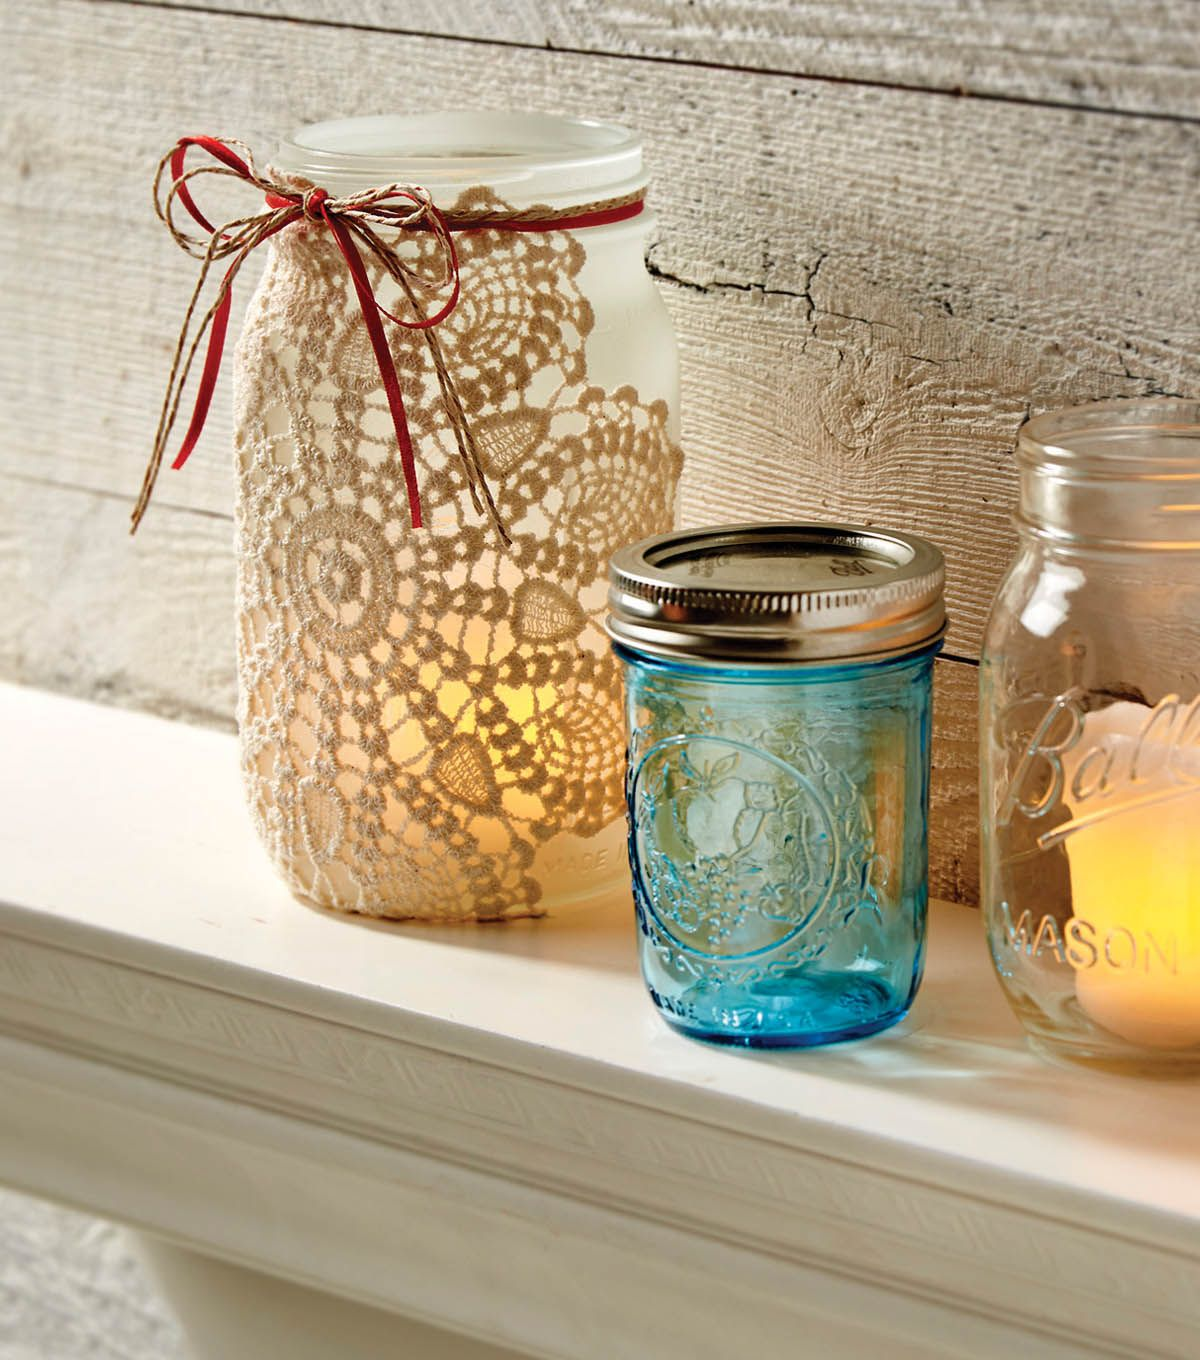 How To Make A Frosted Ball Jar With Doily Joann Jo Ann Ball Jars Jar Crafts Mason Jar Crafts